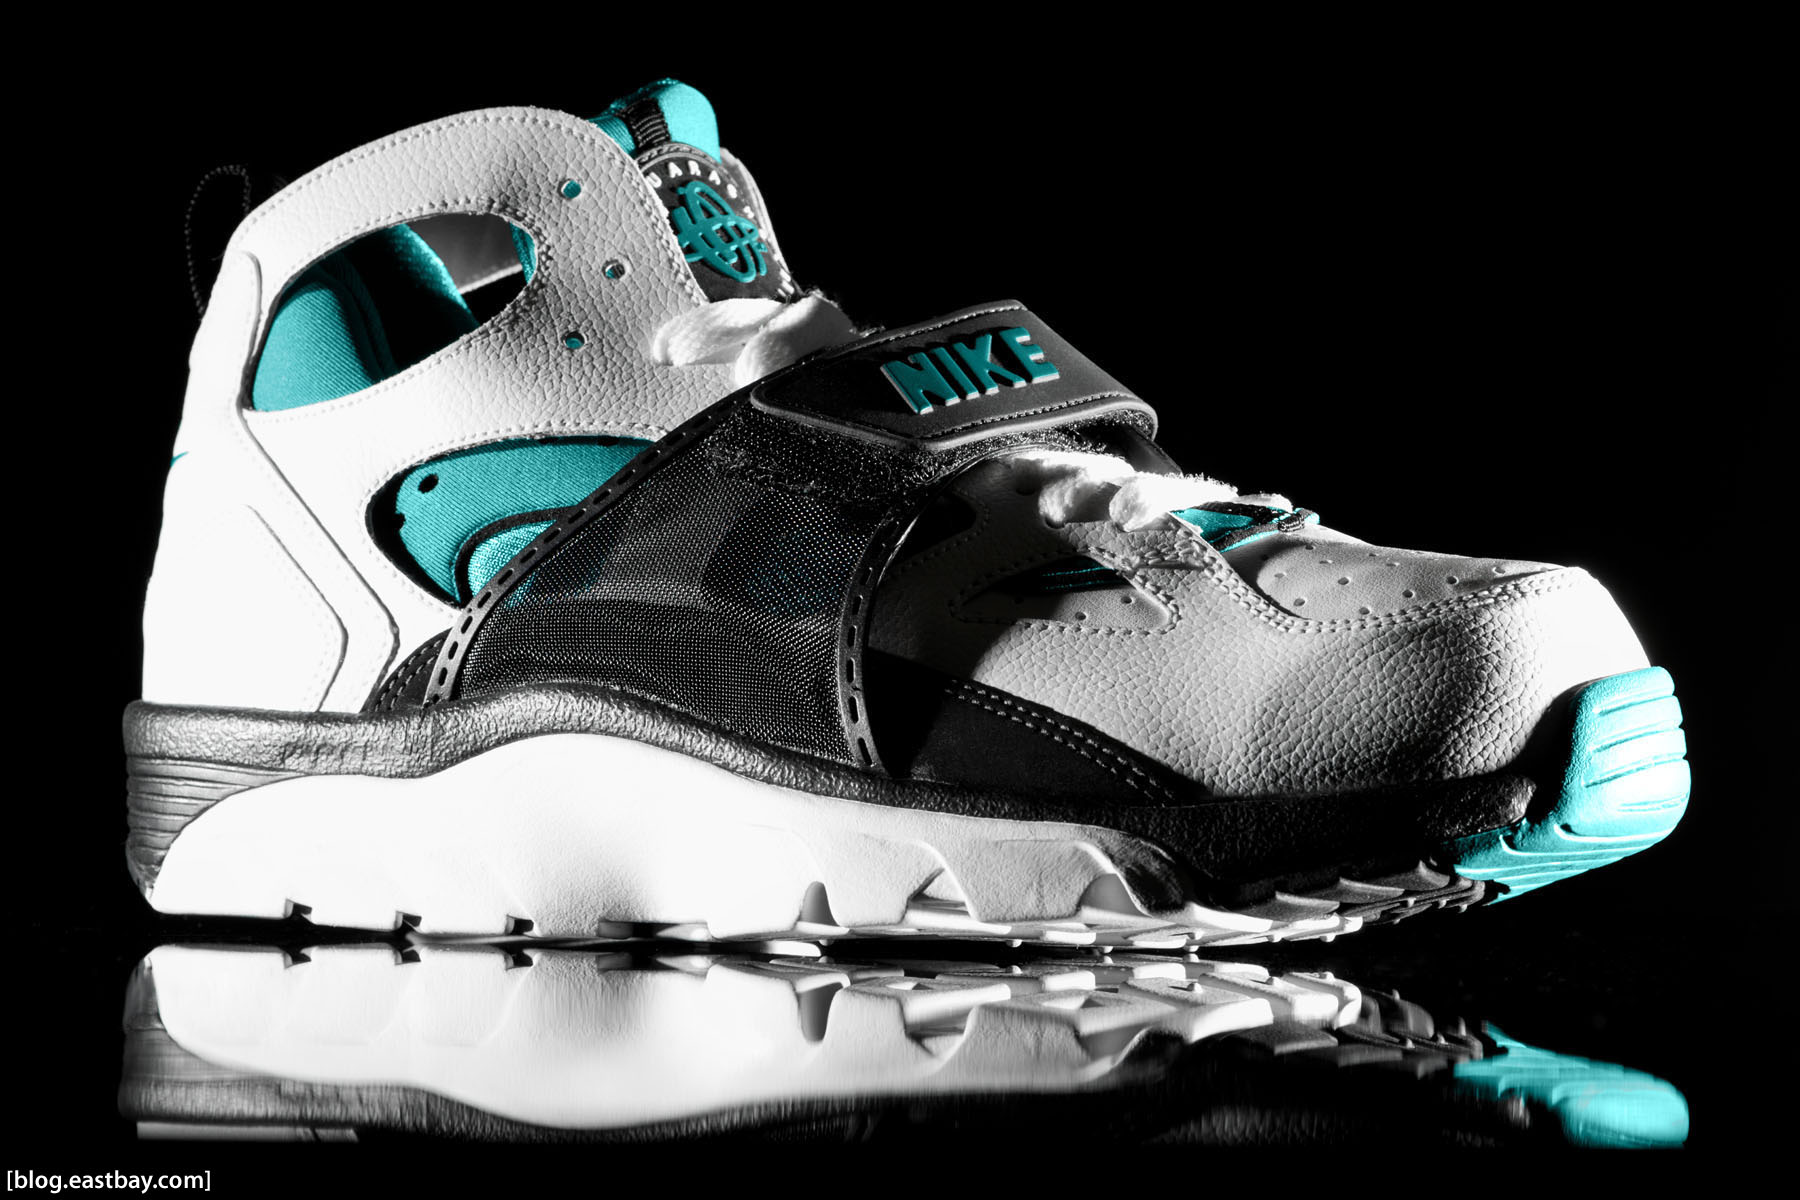 new product 9ea08 157d6 Wallpaper: Nike Air Huarache Trainer | Eastbay Blog ...